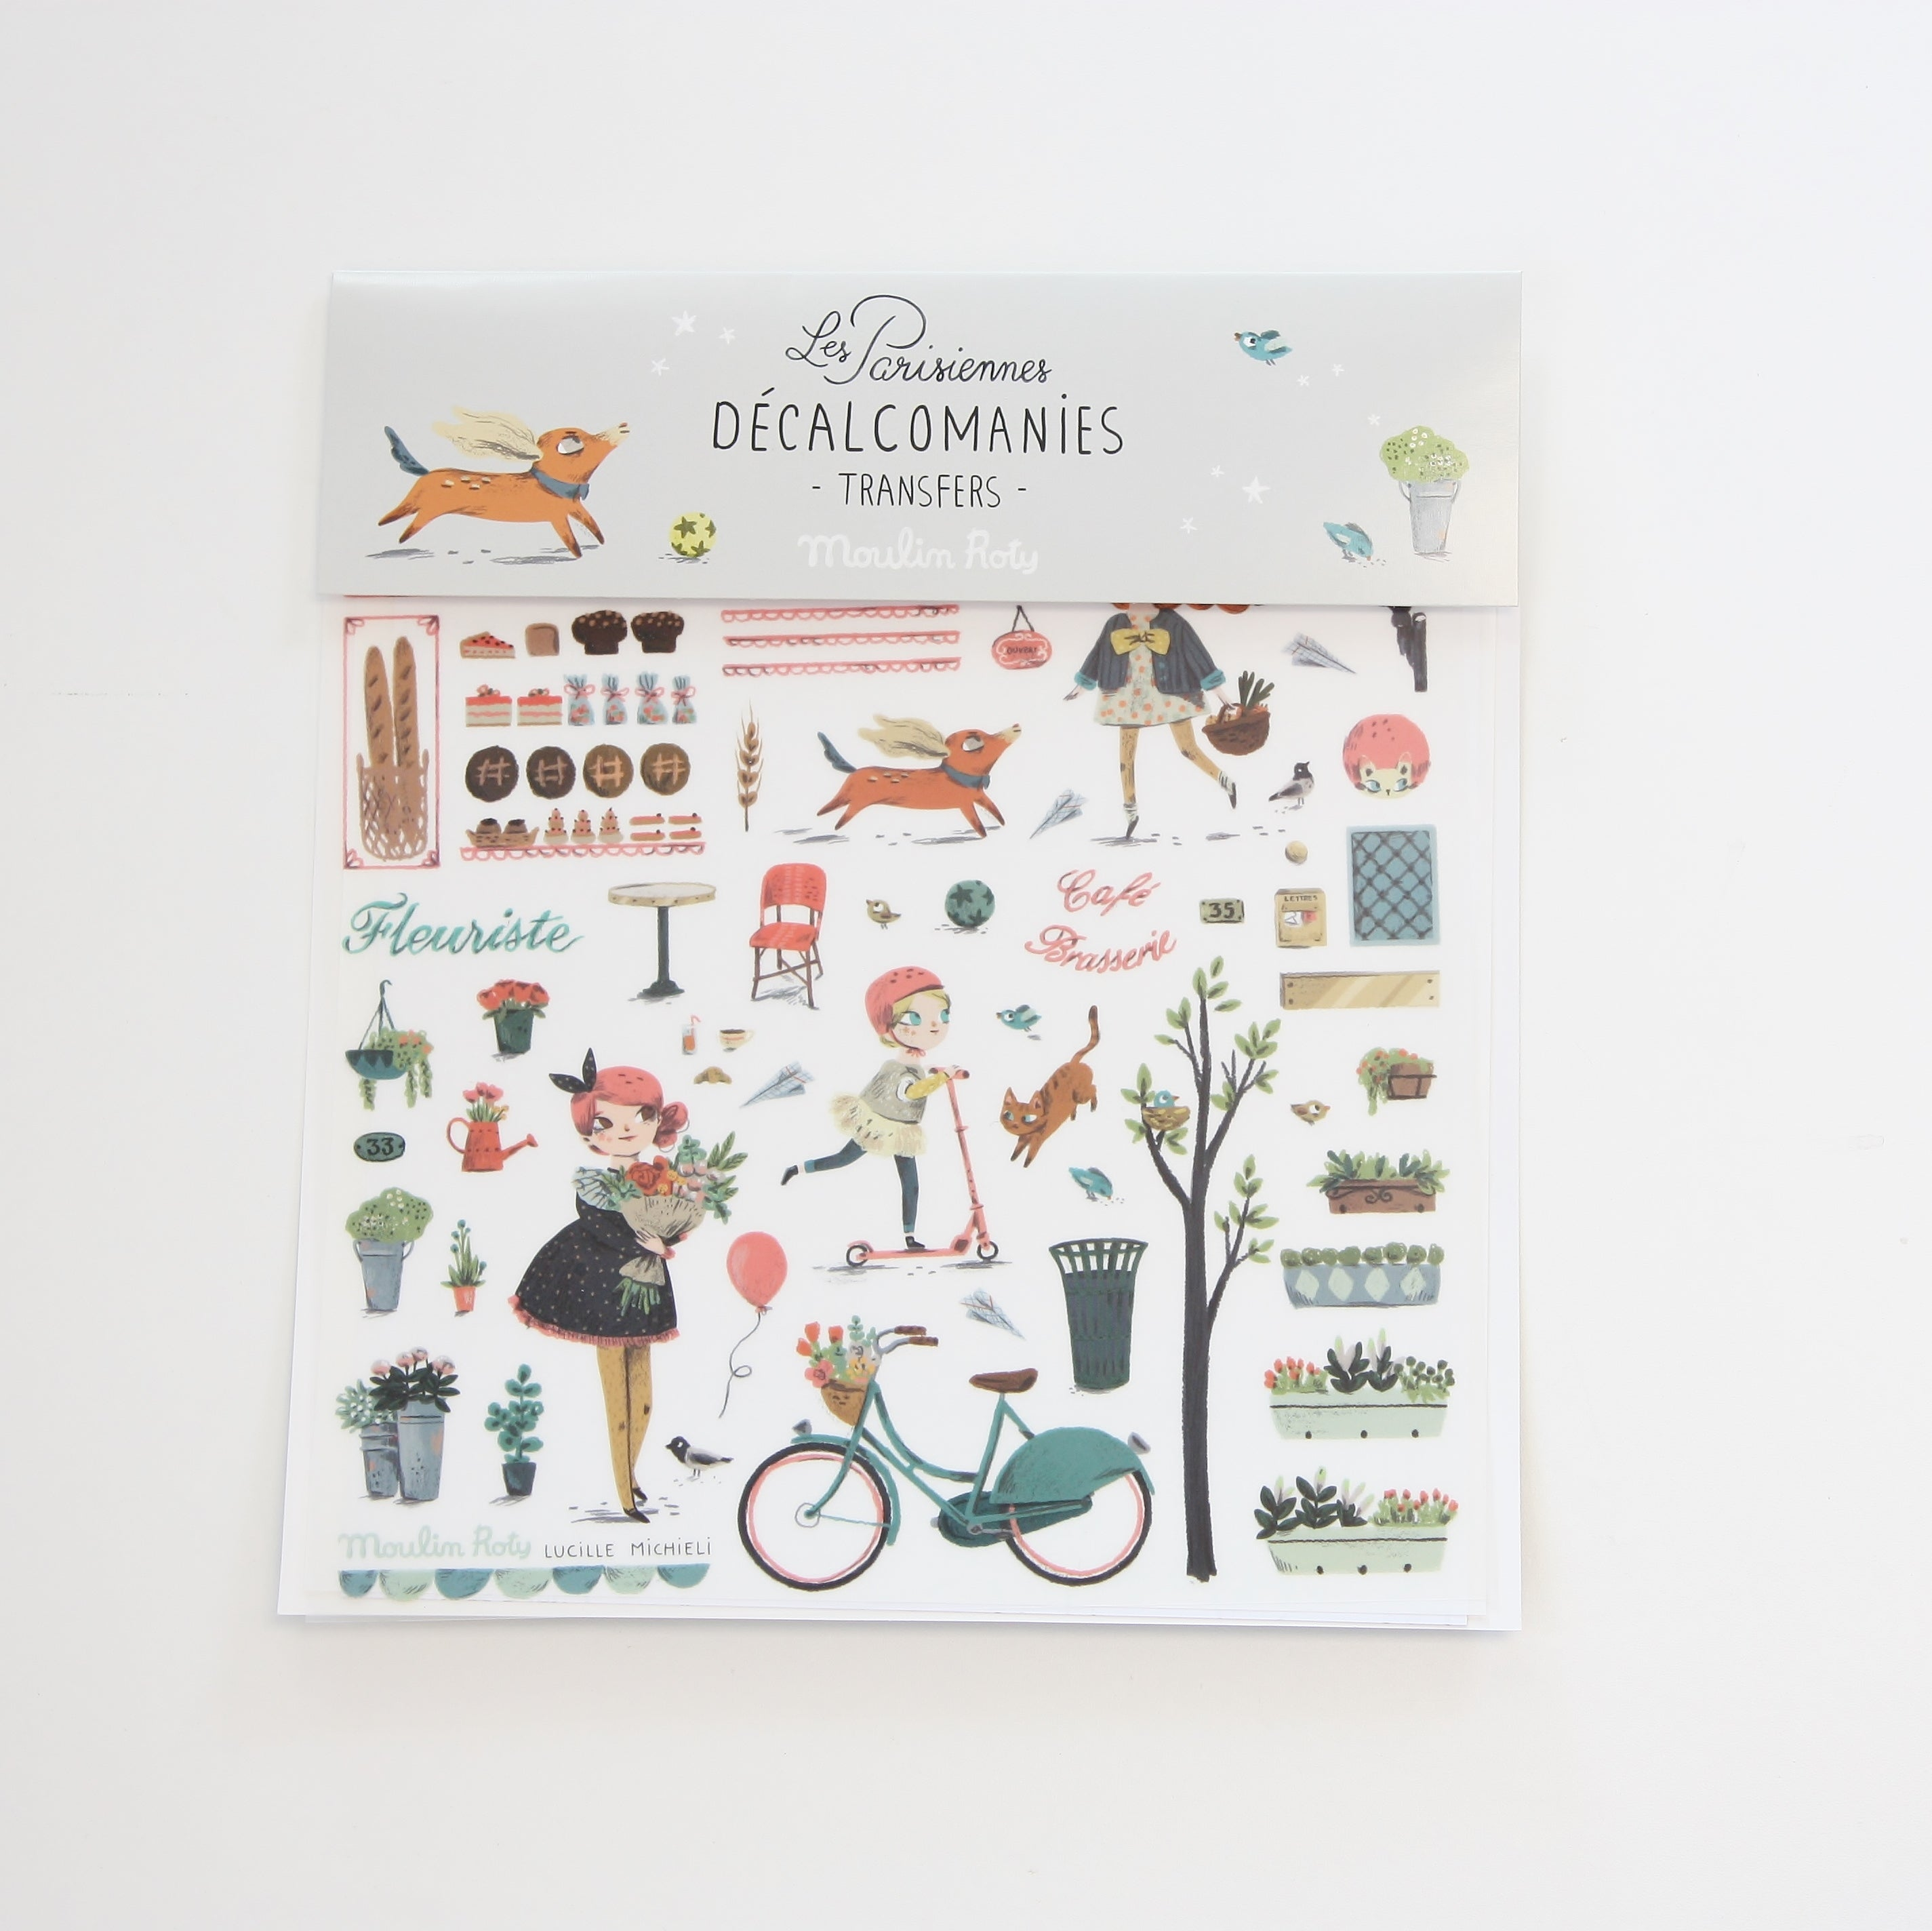 Les Parisiennes - Transfer Decals and Colouring Page